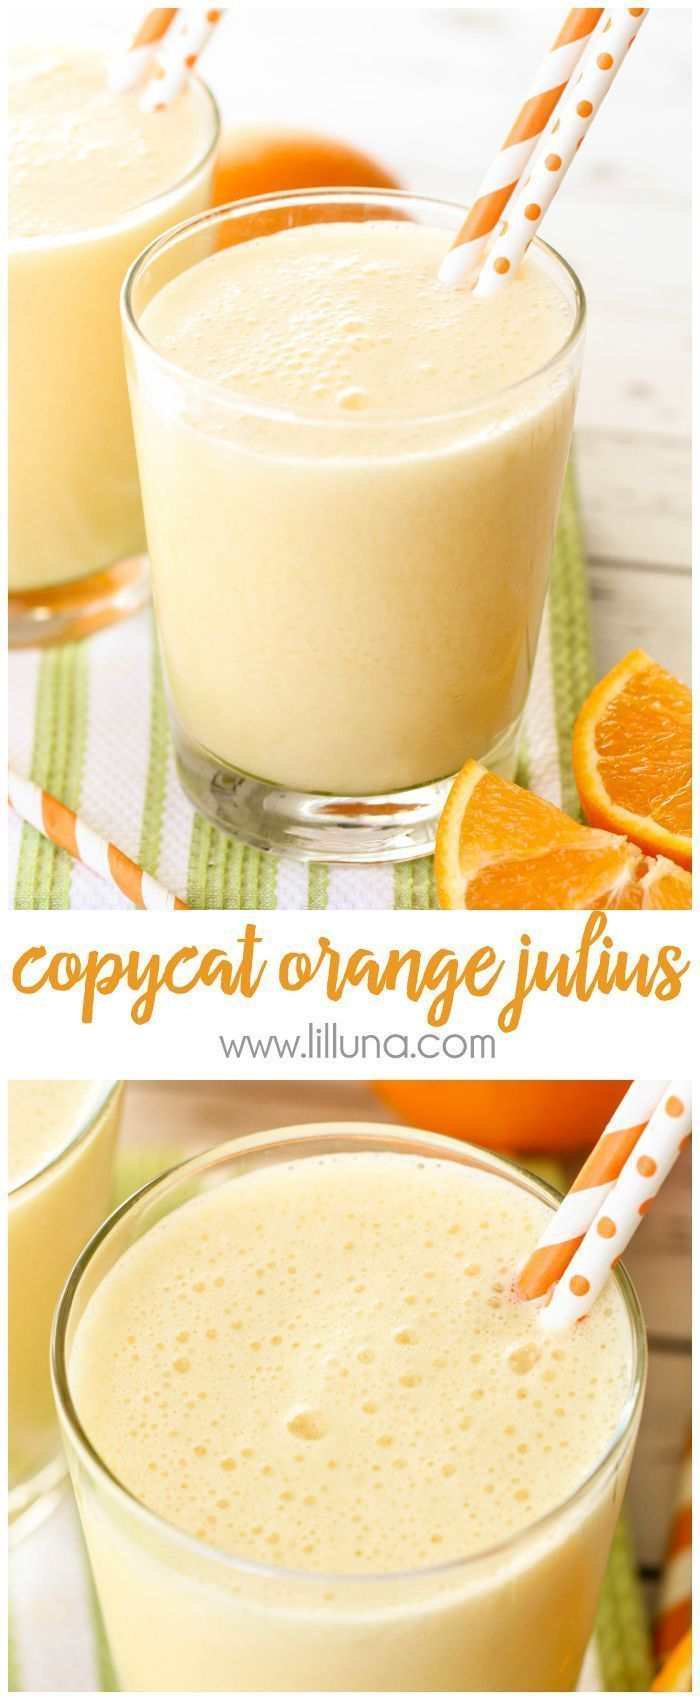 Copycat Orange Julius recipe - takes just a minute to make and is a favorite family treat!  Recipe on { http://lilluna.com }